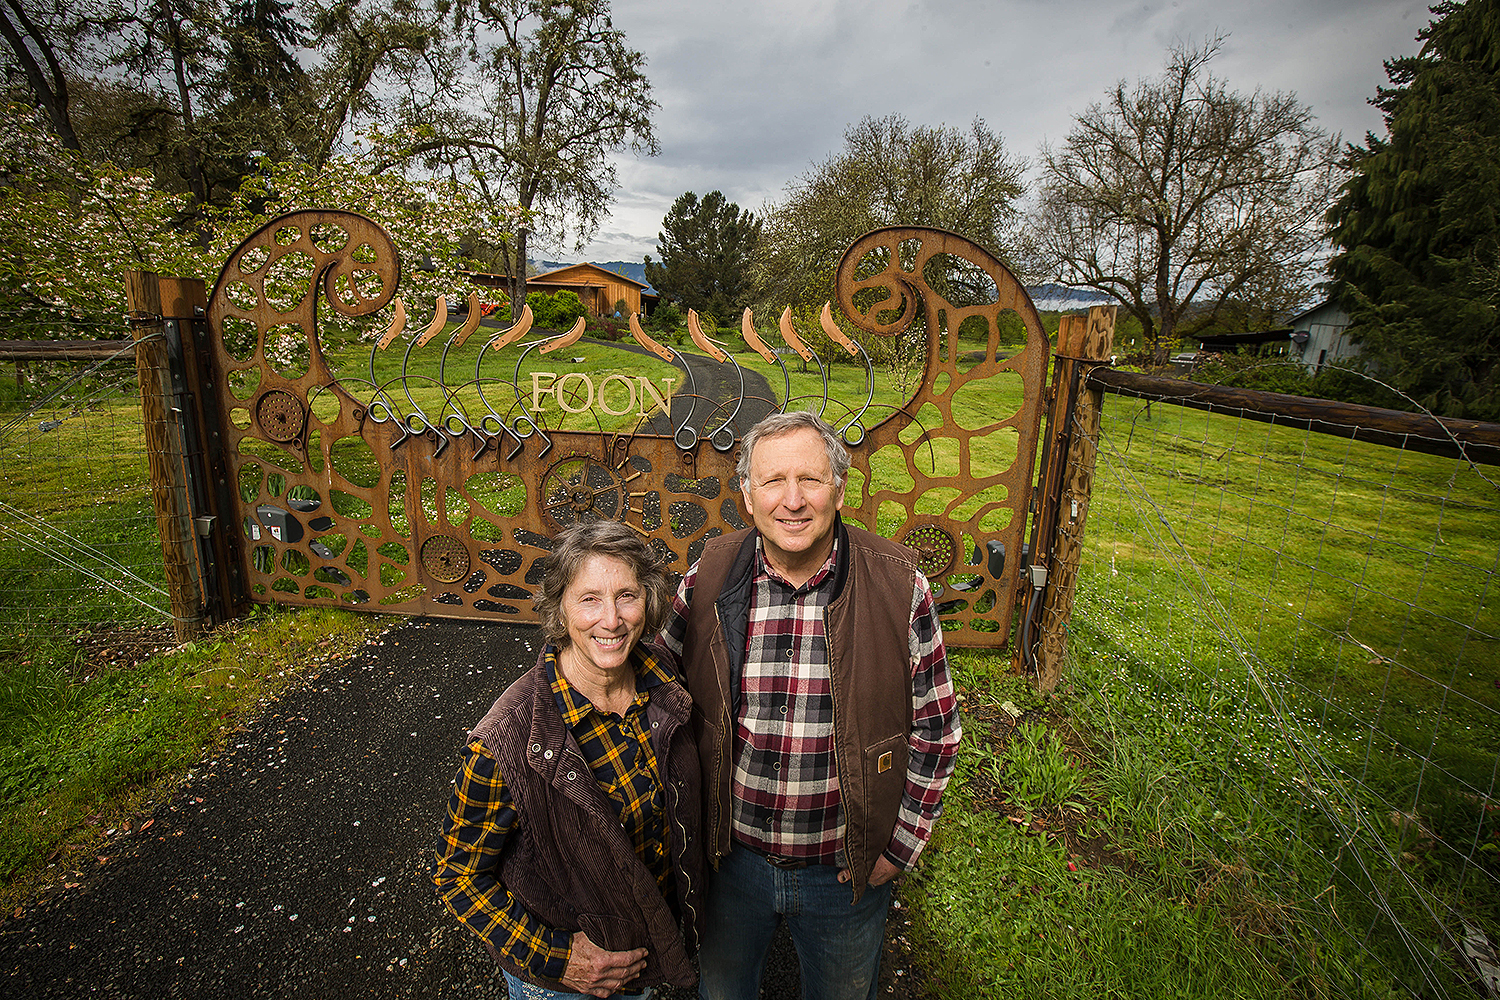 Dr. Howard and Marjorie Feldman in front of the ornate entry gate he designed and fabricated.